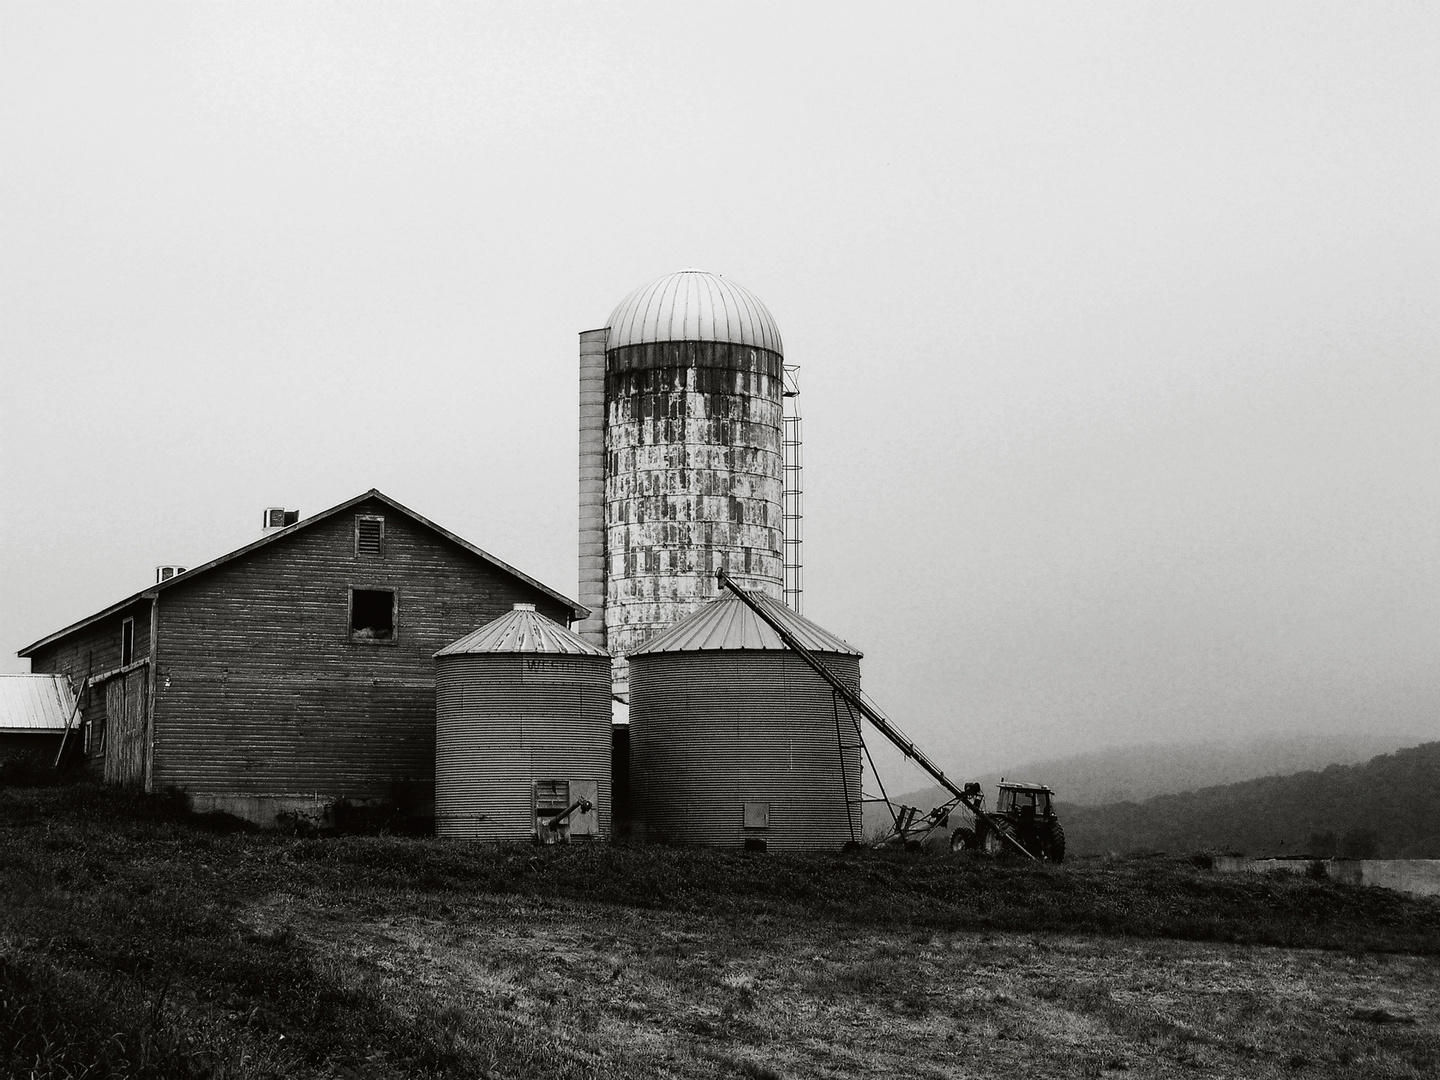 Grain Bins and Barn, Craryville New York